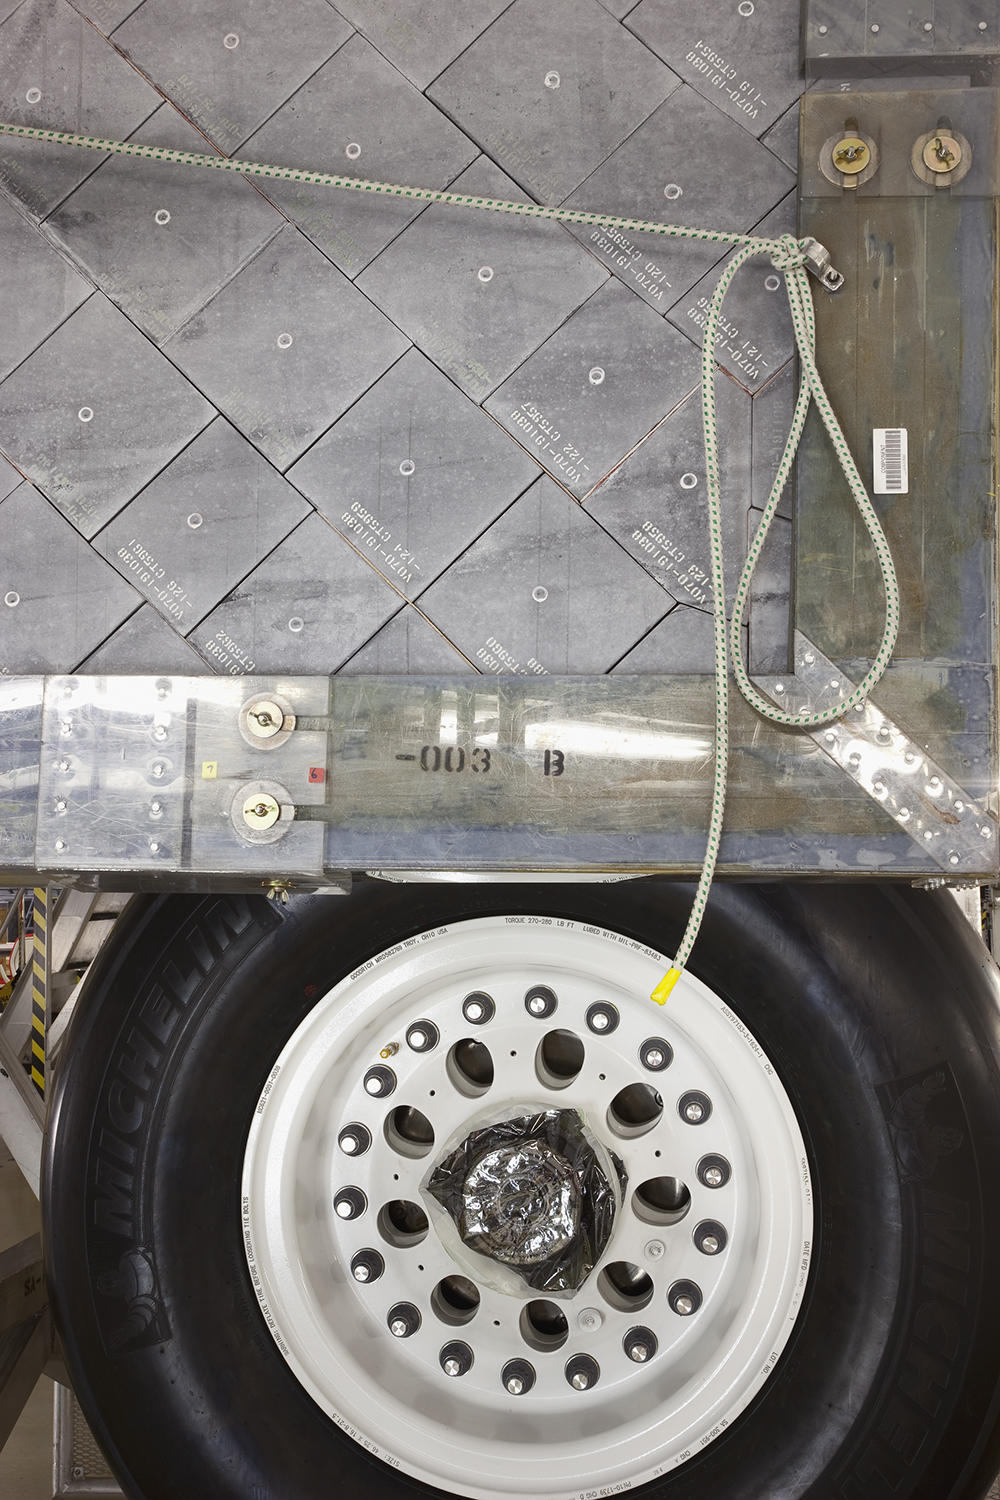 Space Shuttle Endeavour Tire and Landing Gear Door